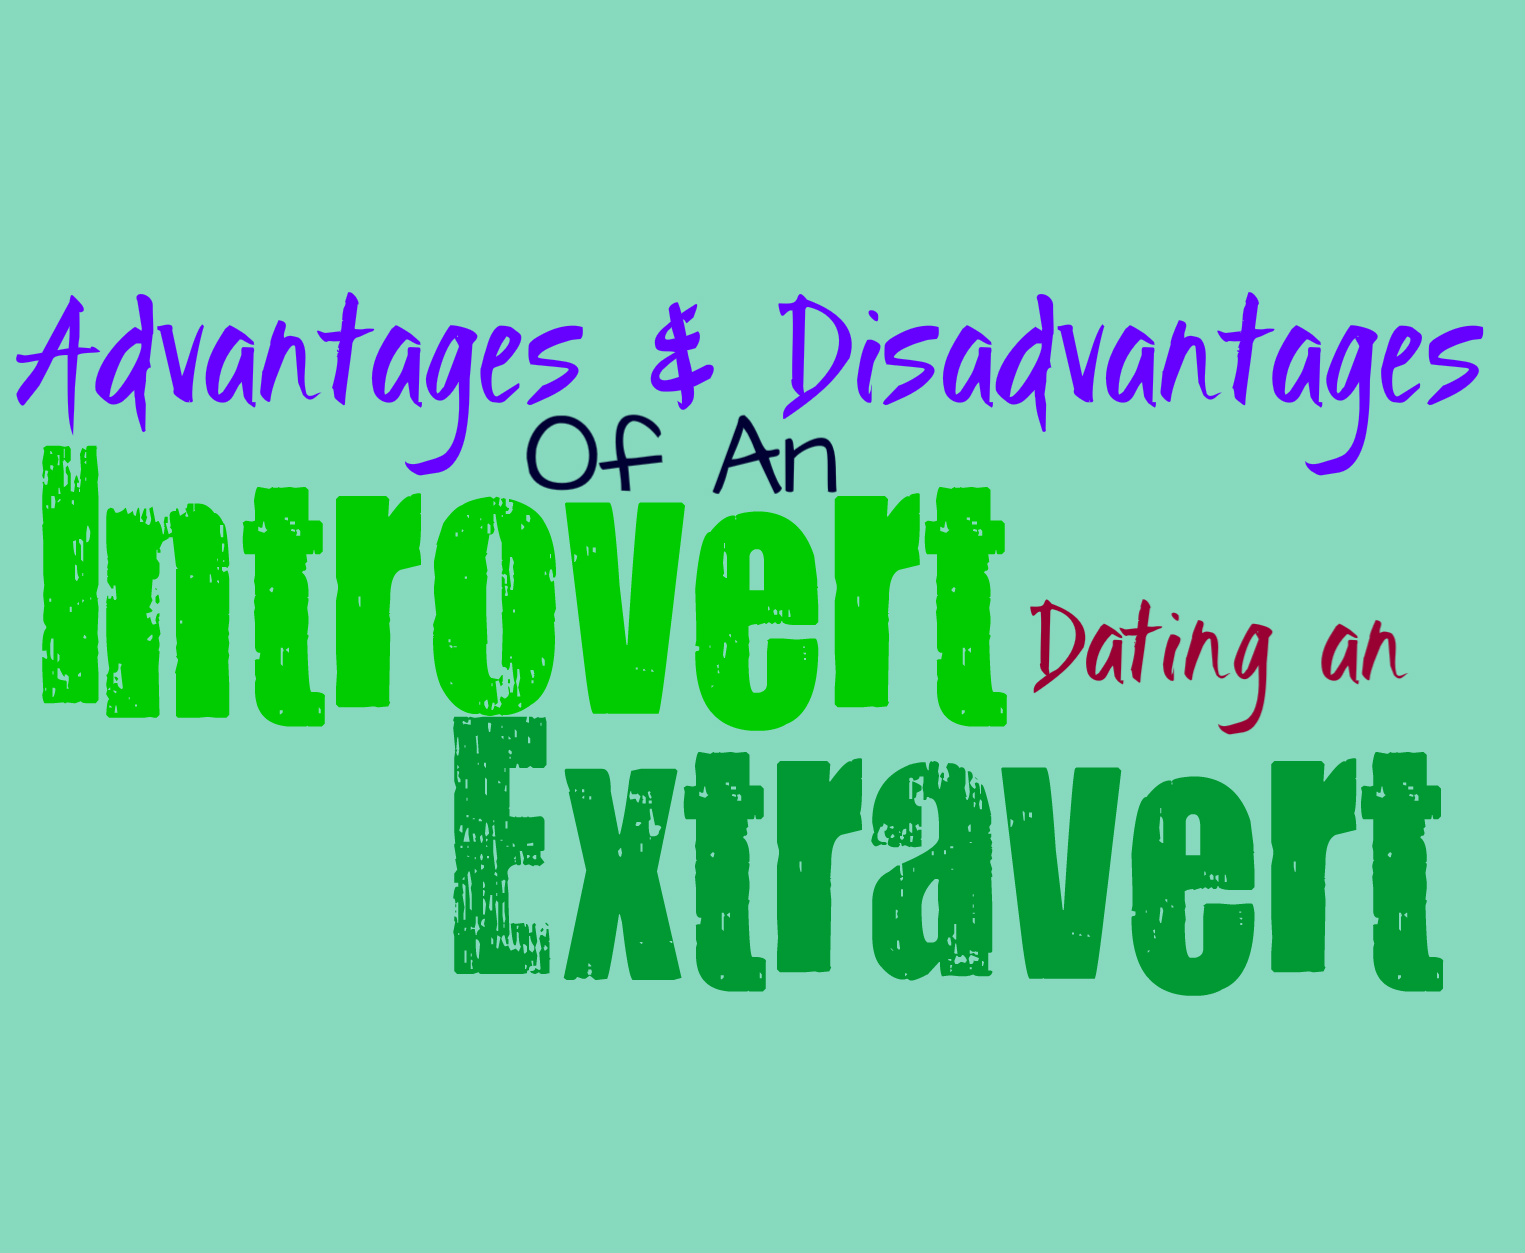 Extreme introvert and social awkward dating